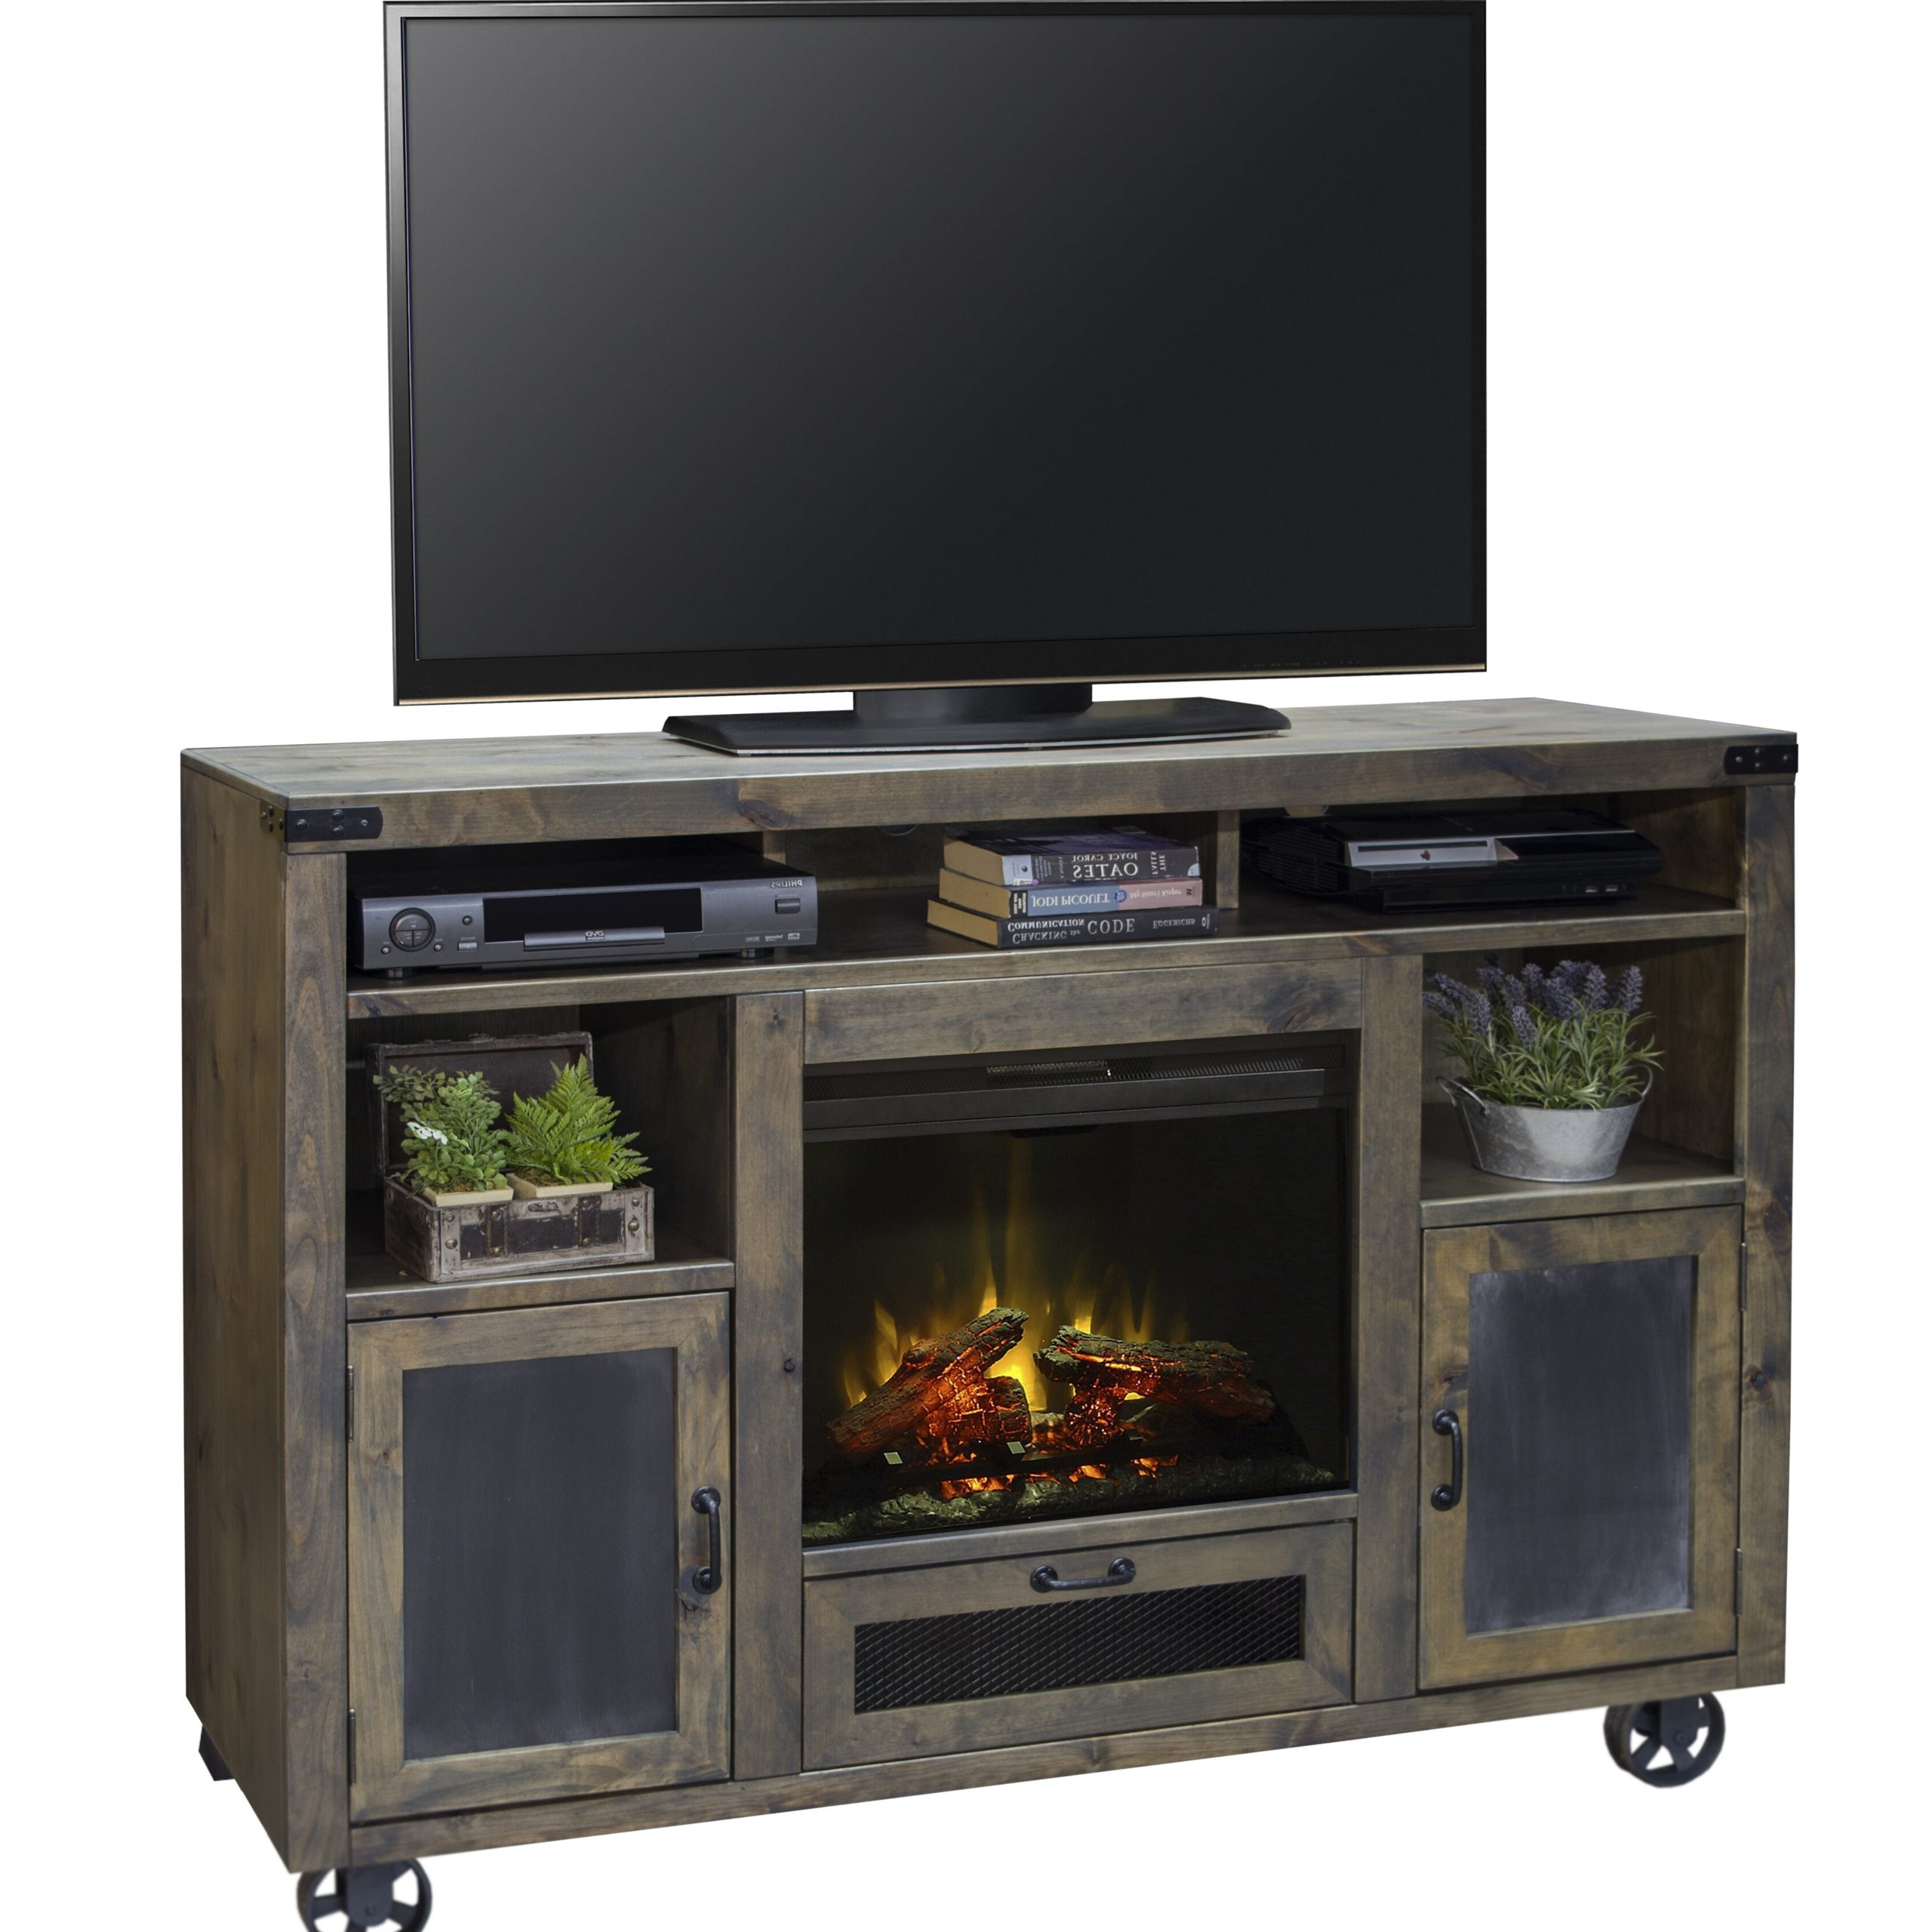 """Fireplace Tv Stand 70 Inch – Ideas On Foter With Chicago Tv Stands For Tvs Up To 70"""" With Fireplace Included (View 3 of 20)"""